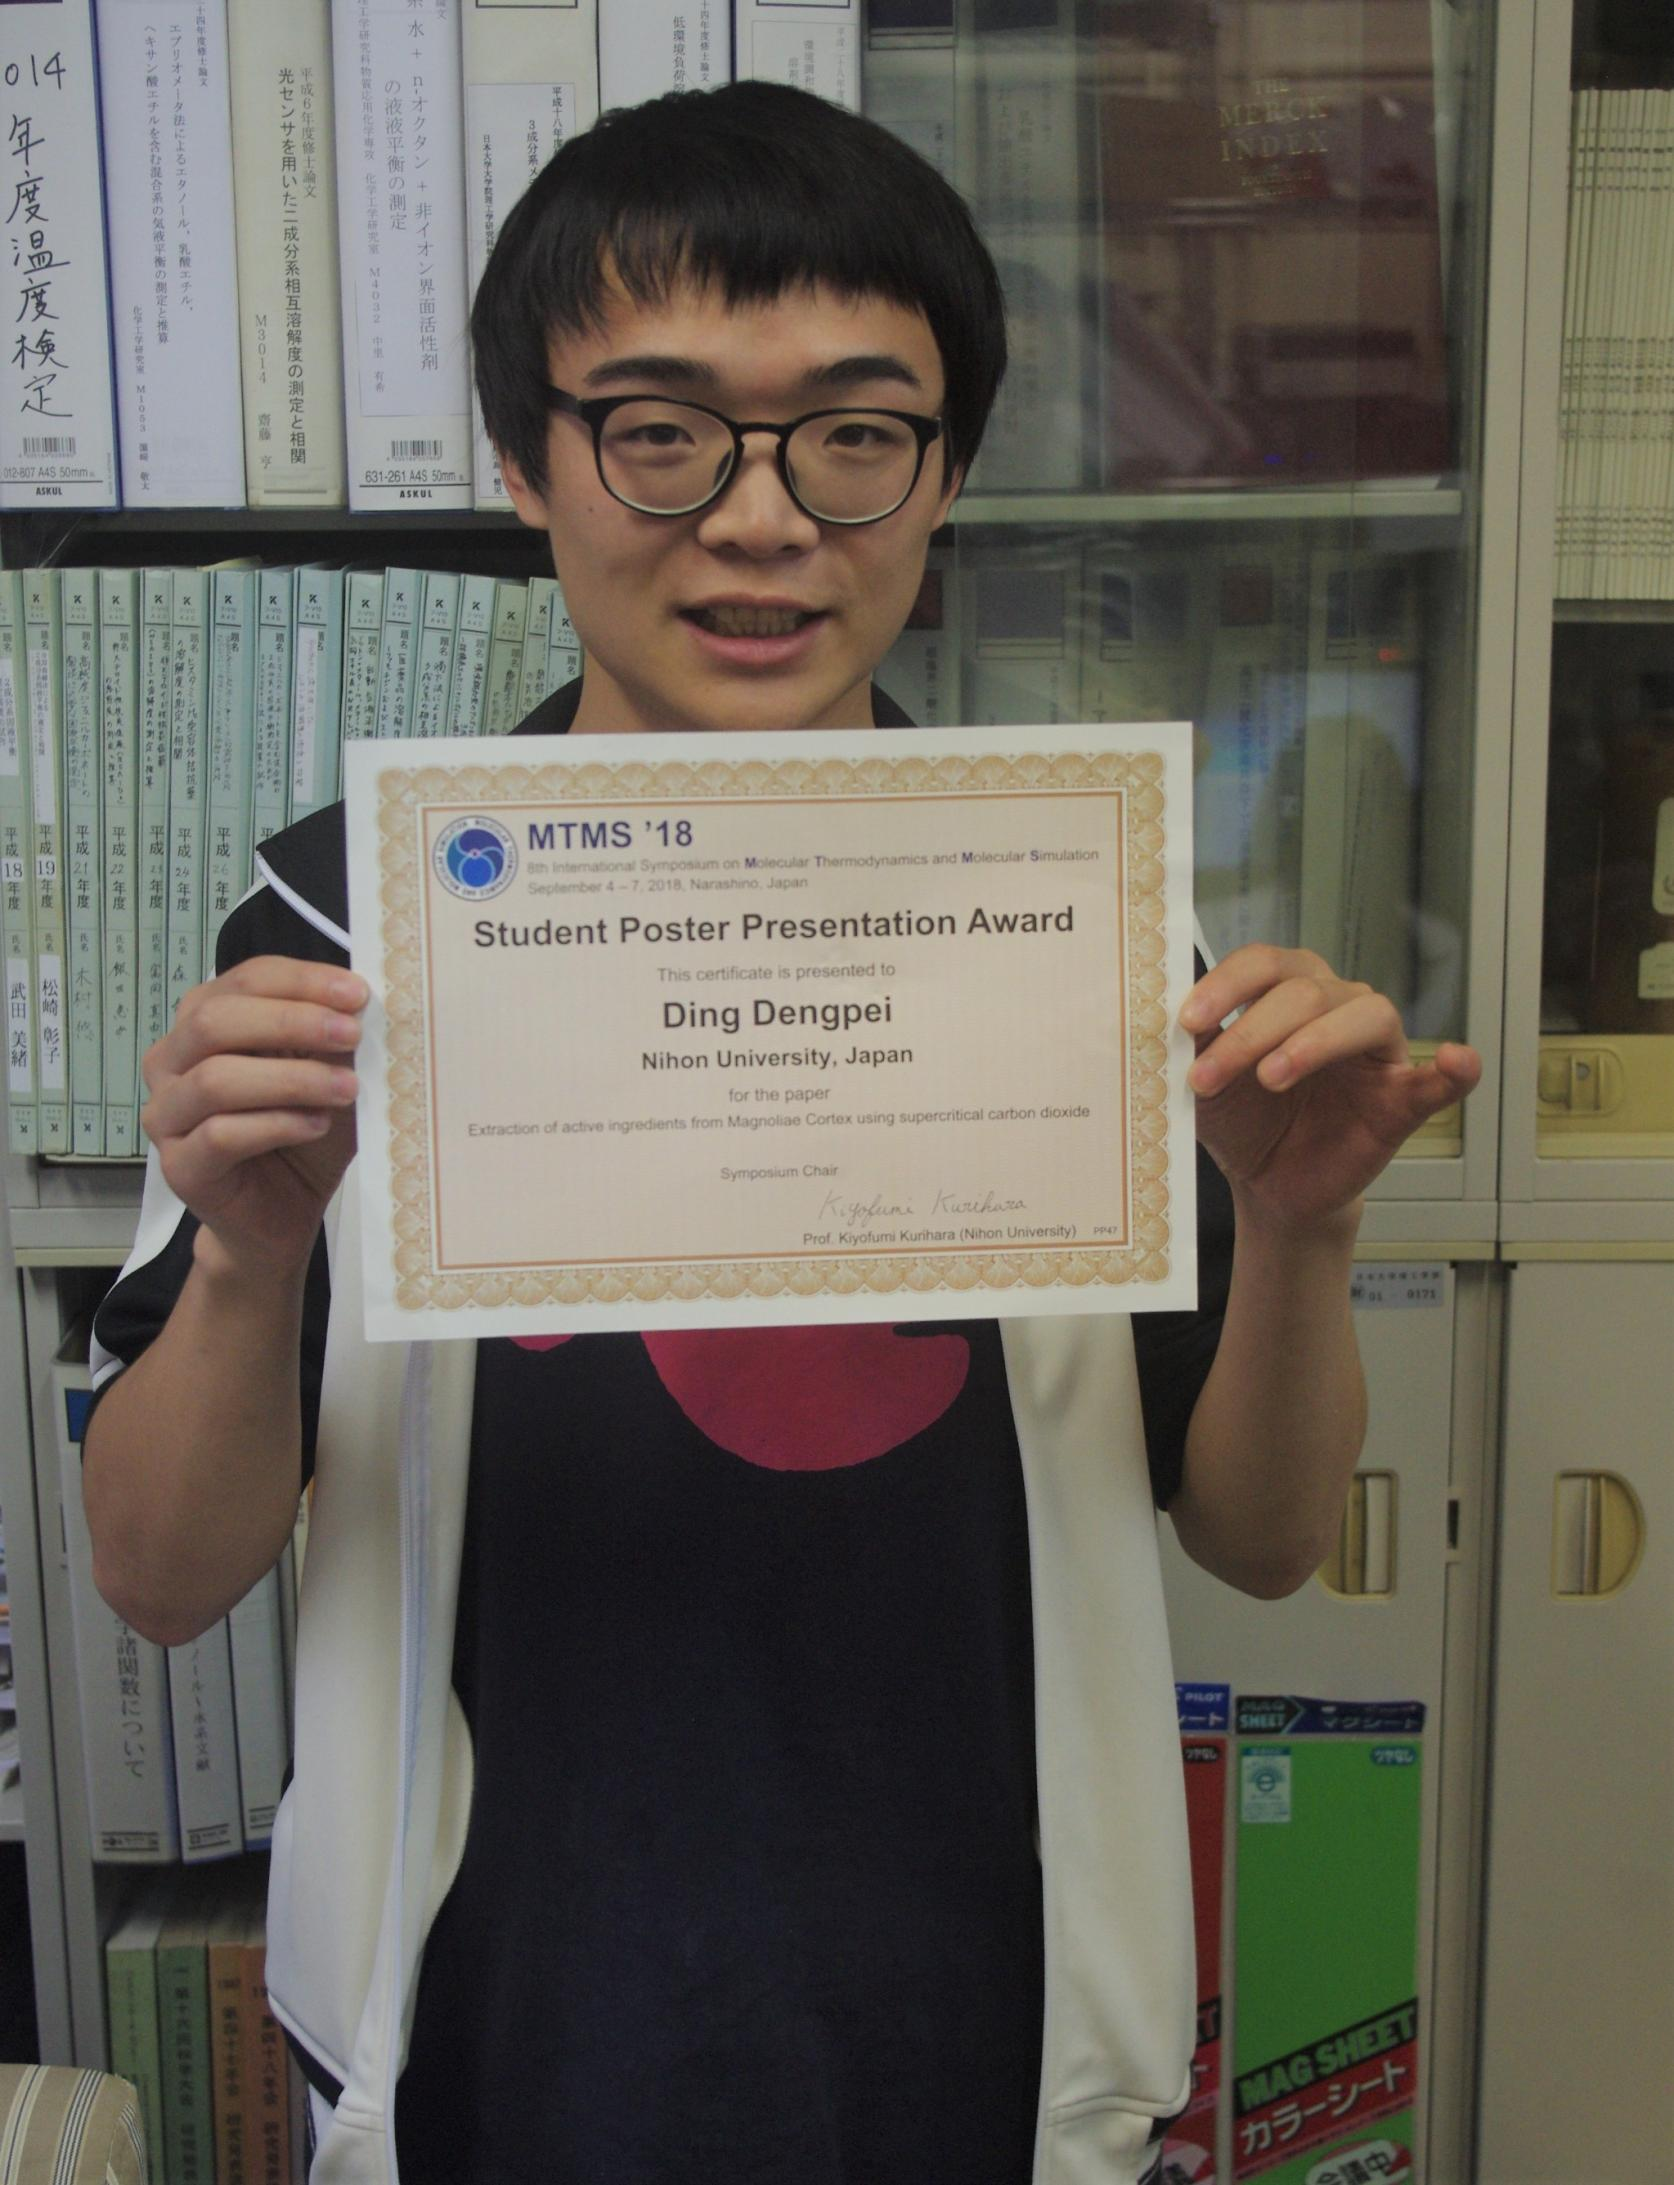 物質応用化学専攻2年の丁登培さんが「8th International Symposium on Molecular Thermodynamics and Molecular Simulation (MTMS '18)」においてStudent Poster Presentation Awardを受賞しました。